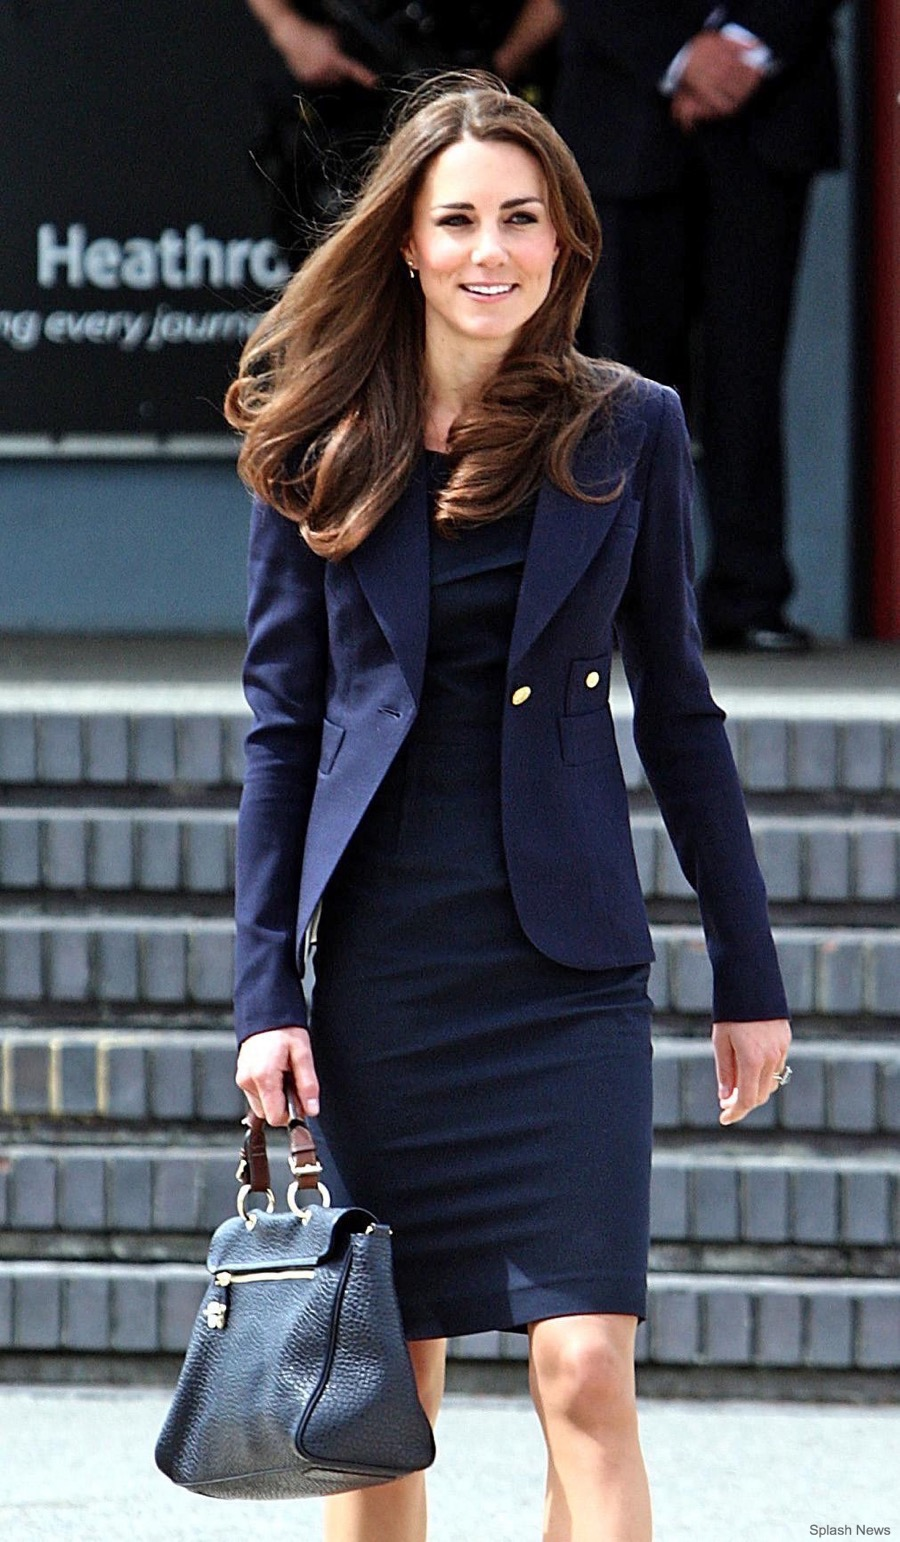 Kate-Middleton-Heathrow-Canada-2011